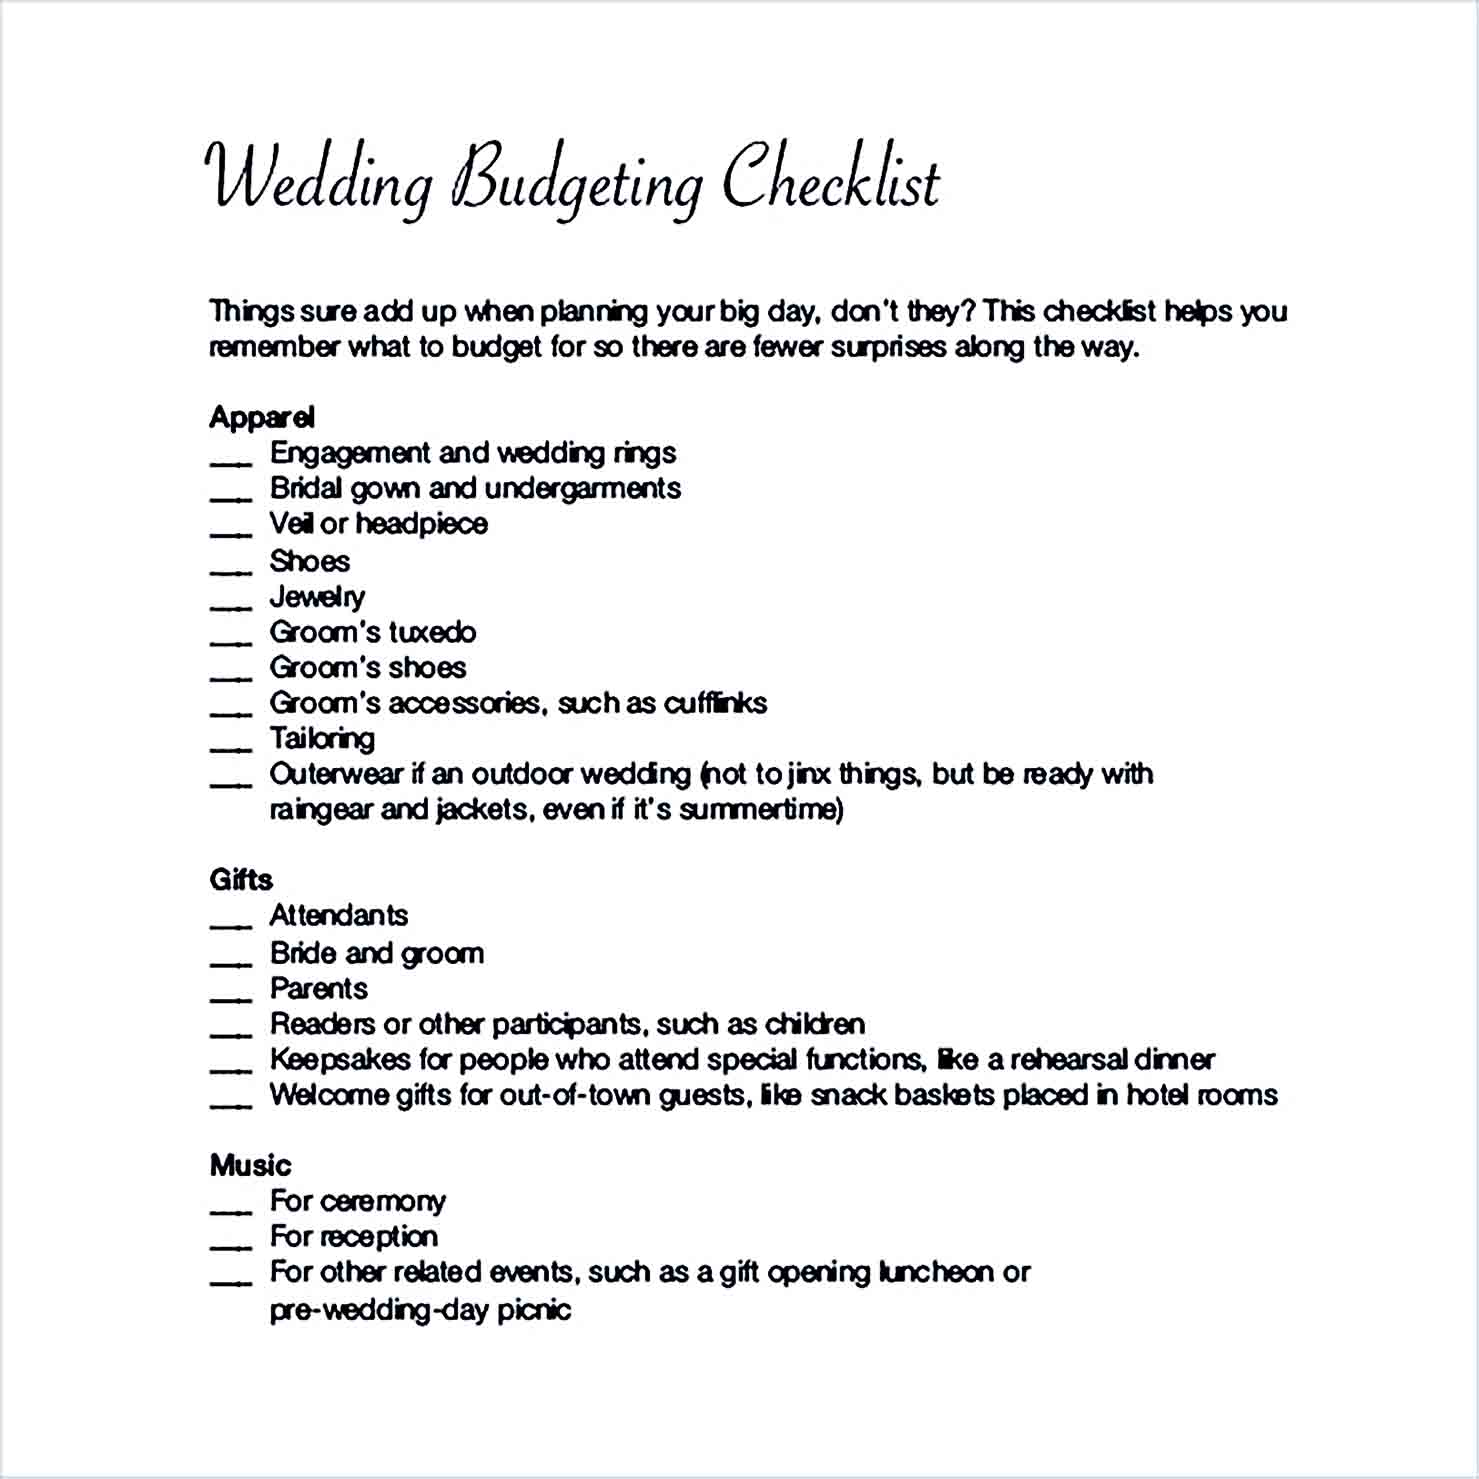 Sample Planed Wedding Budget Checklist For